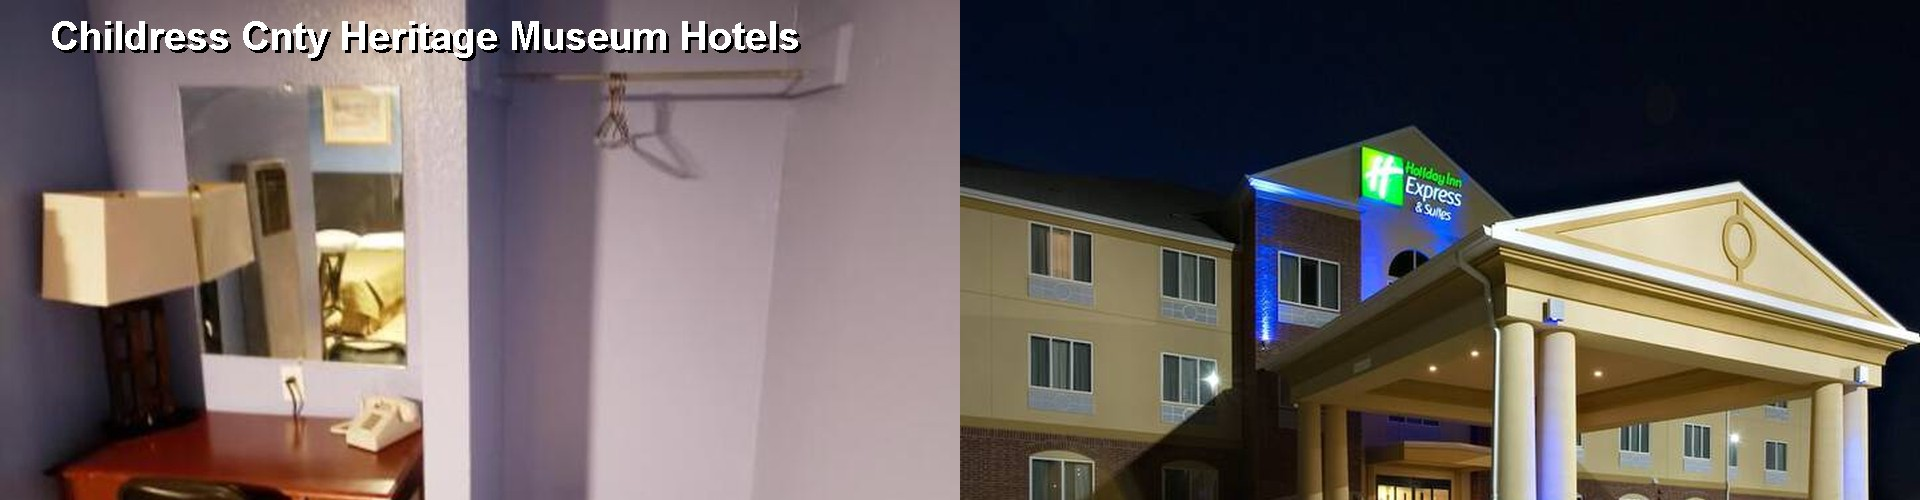 5 Best Hotels near Childress Cnty Heritage Museum